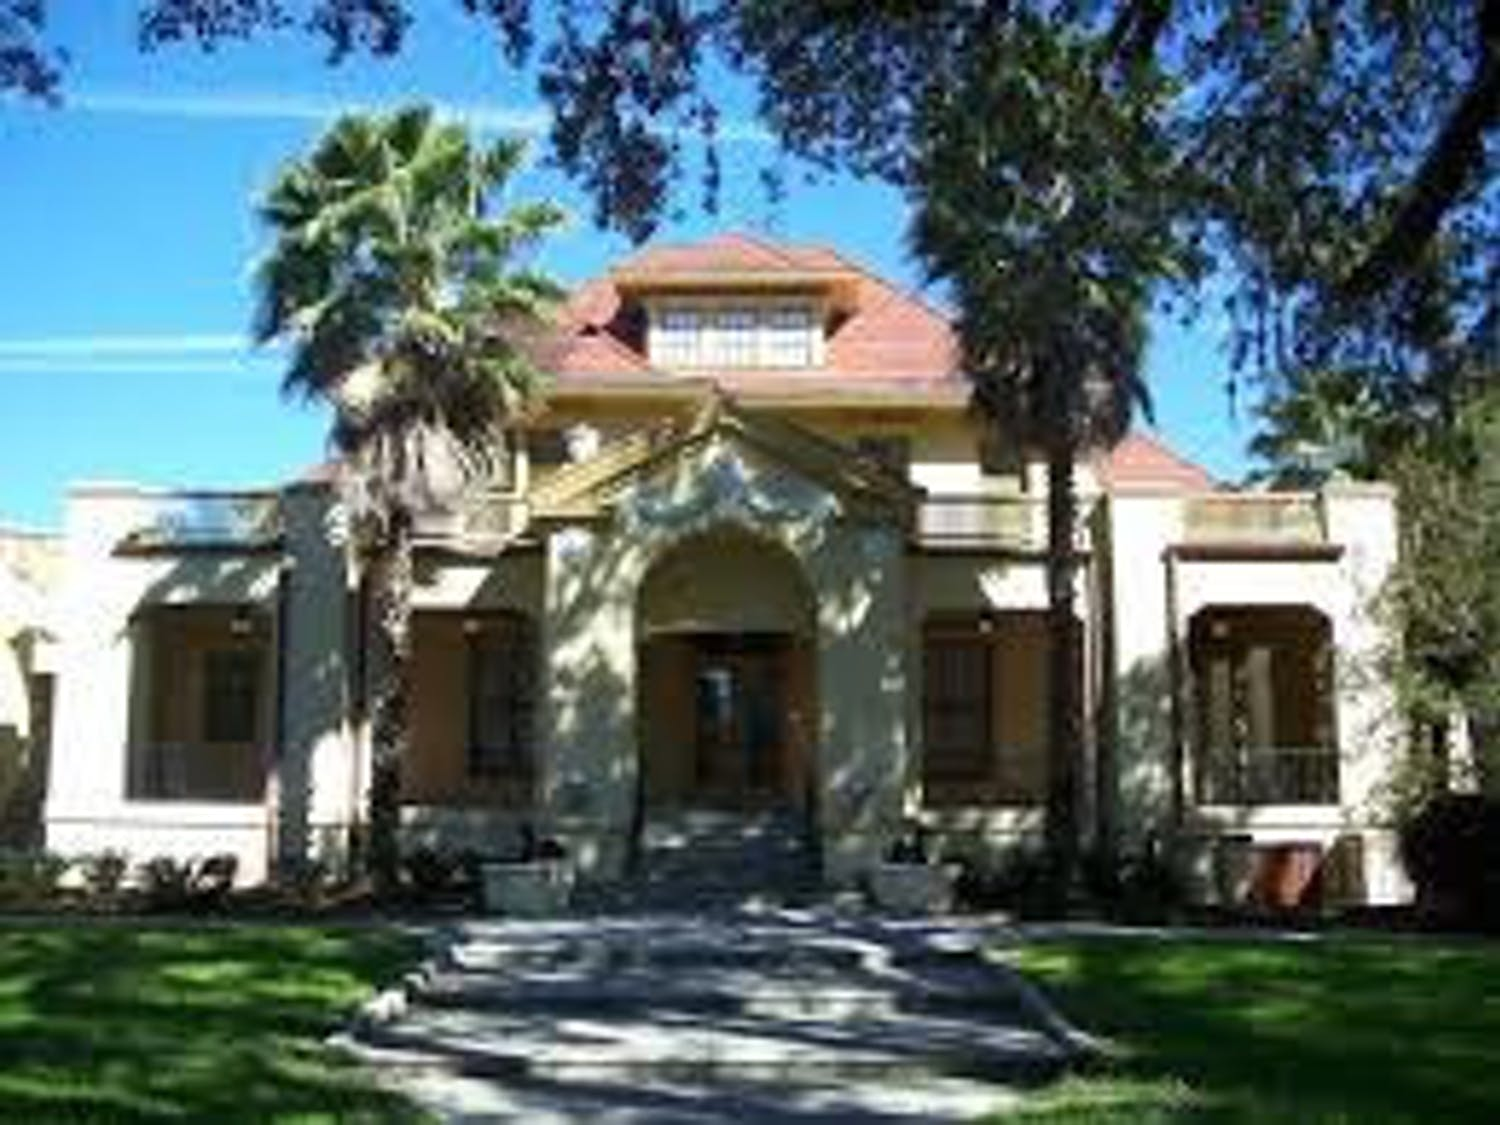 The Historic Thomas Center works as acultural eventscenterfor the community and surrounding areas ofGainesville,Florida.